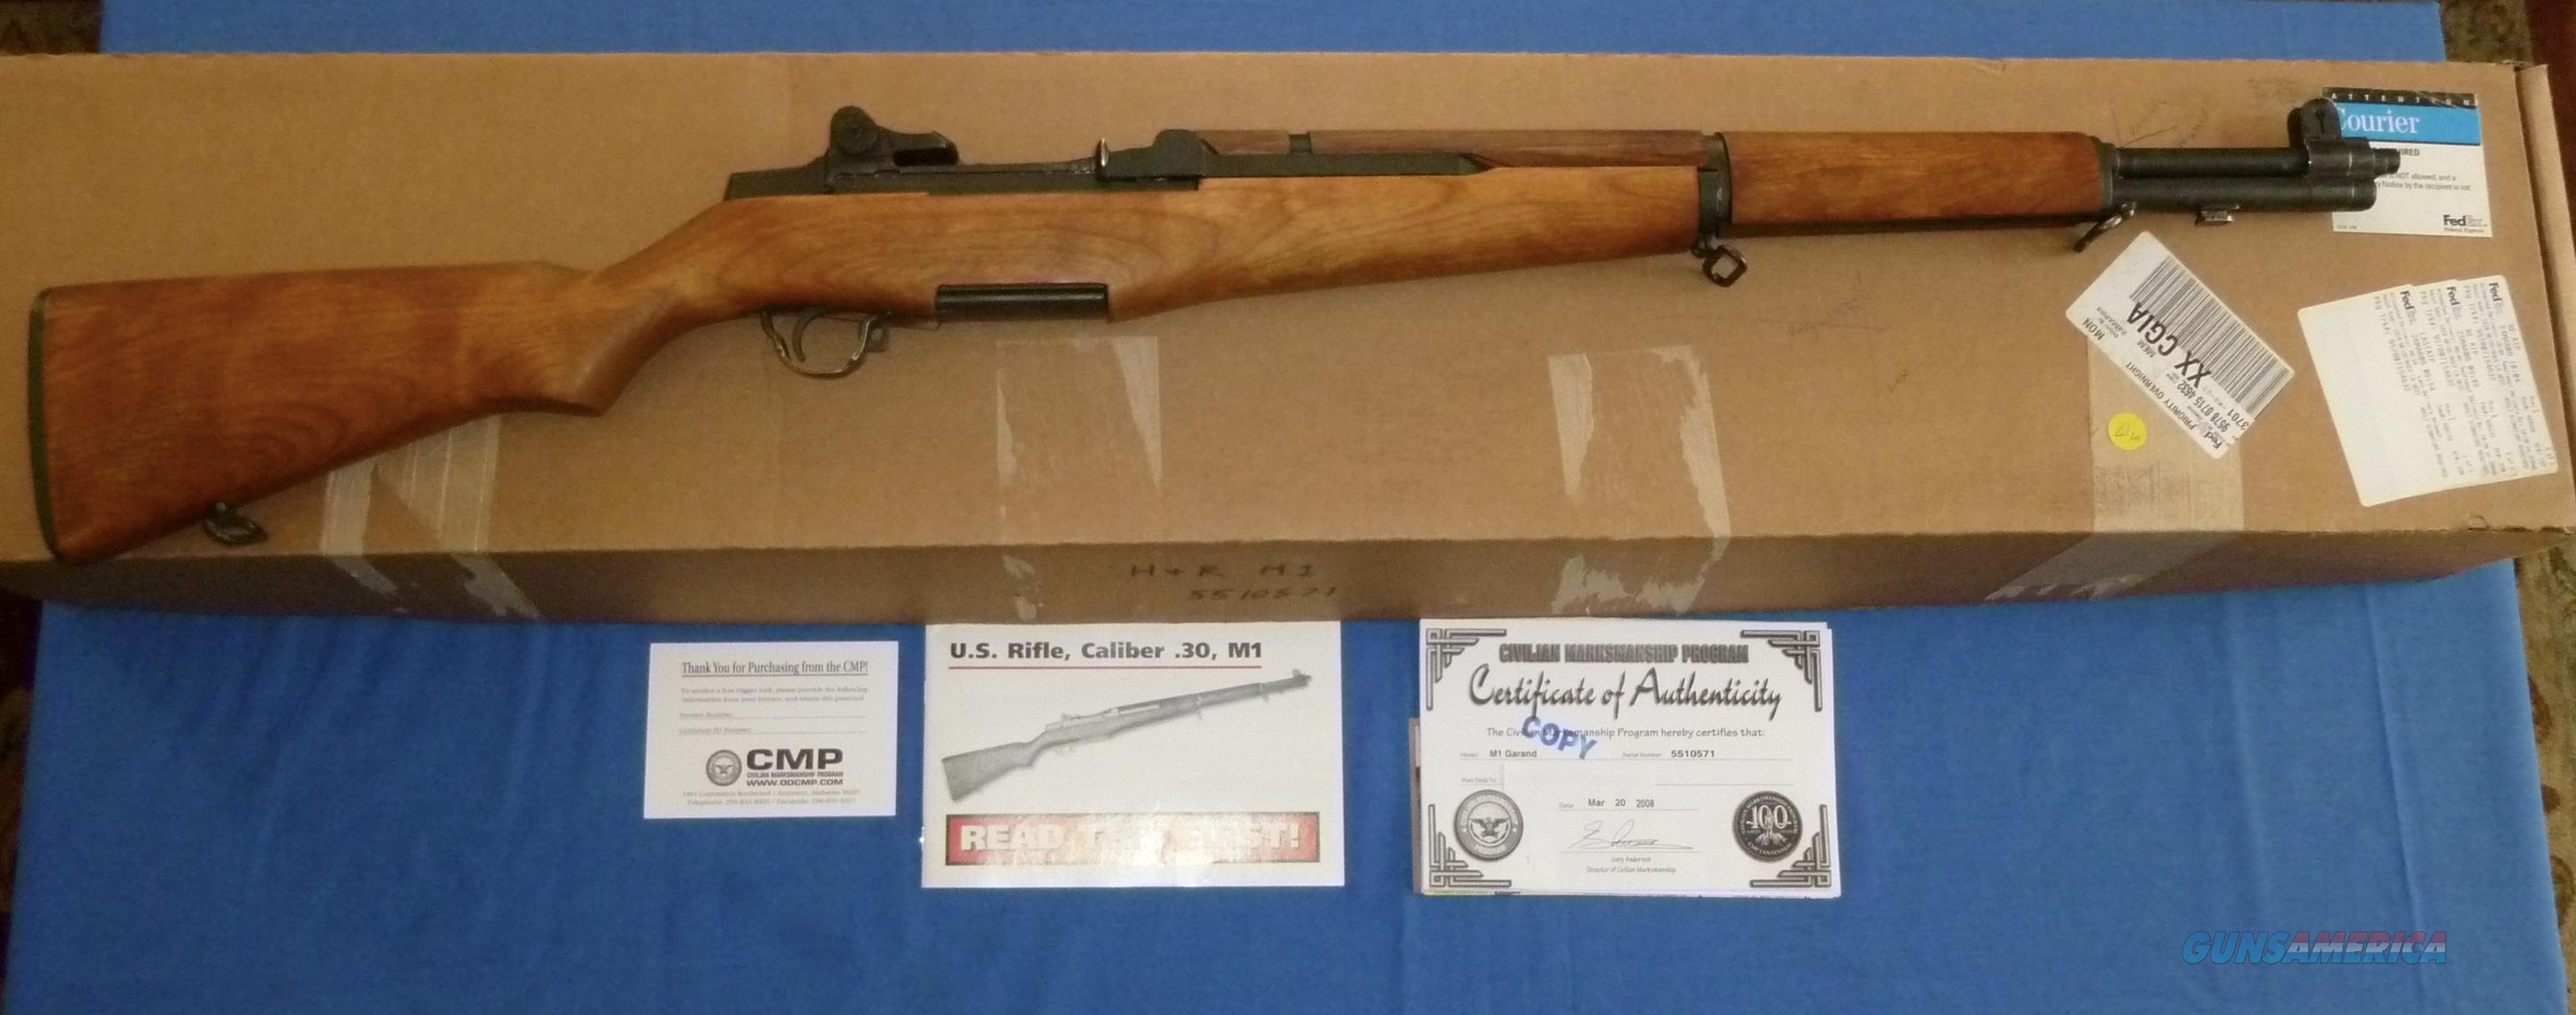 CMP HARRINGTON & RICHARD M1 GARAND W/BOX AND PAPERWORK  Guns > Rifles > Military Misc. Rifles US > M1 Garand